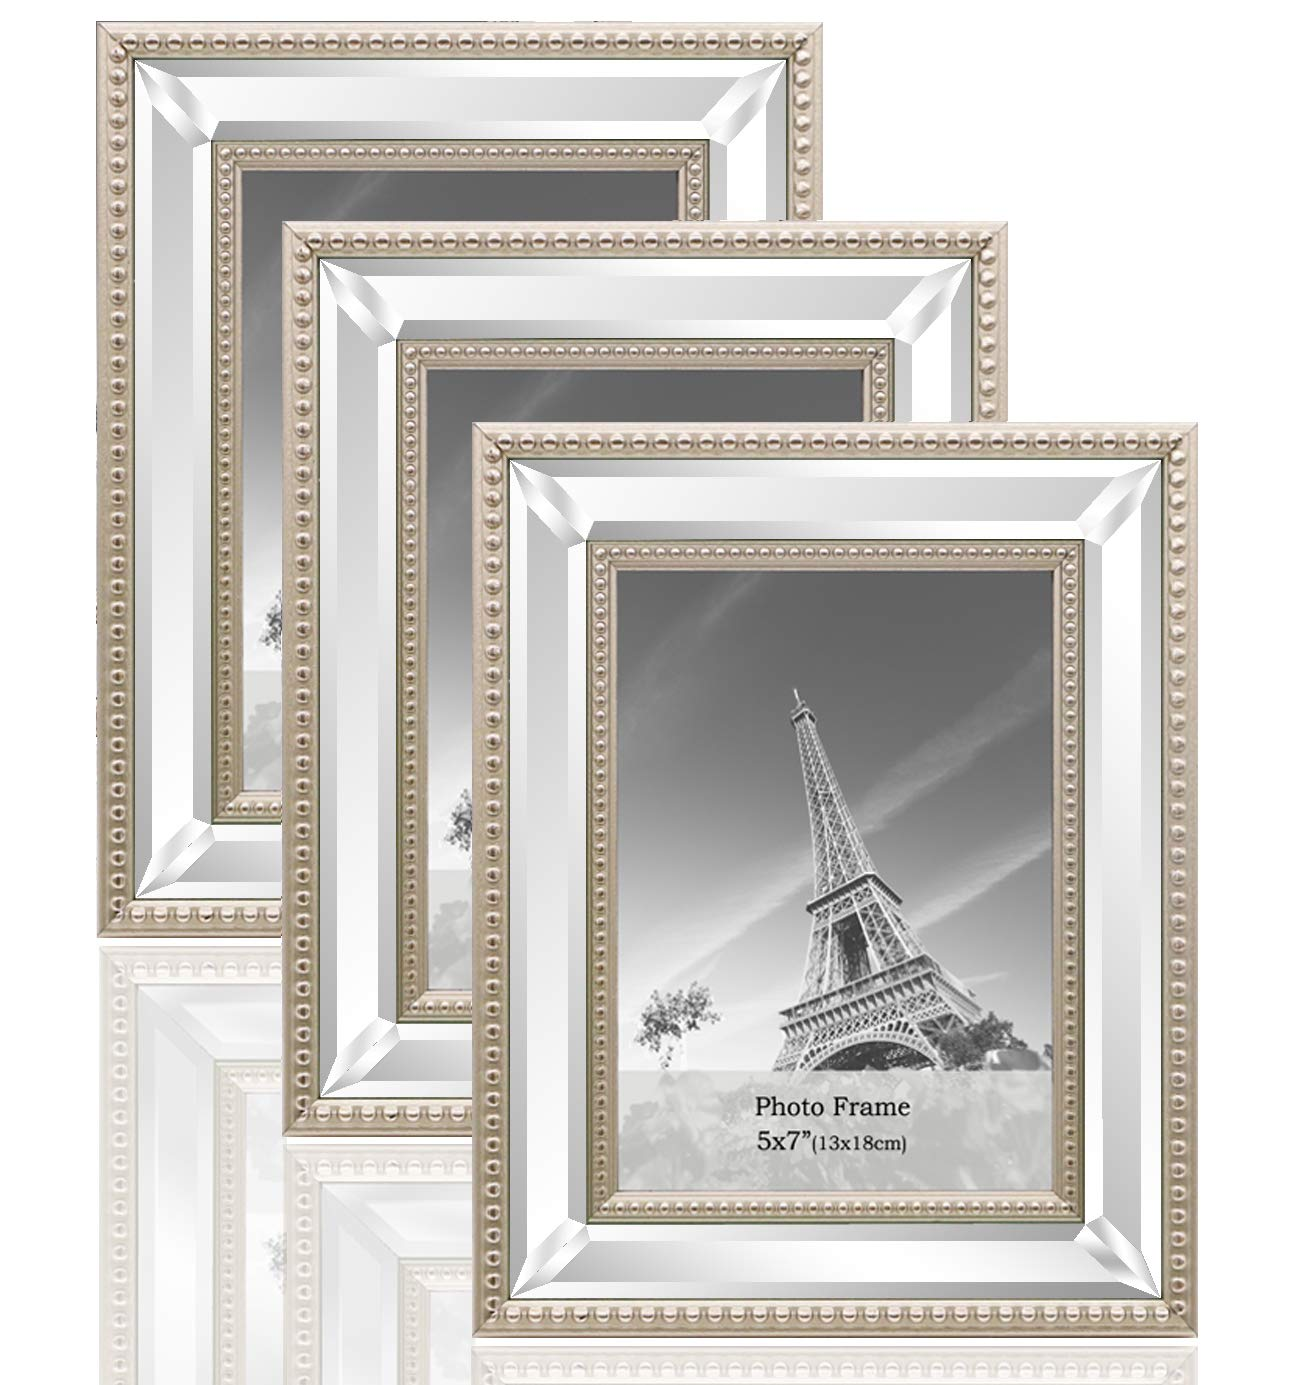 meetart 5x7 3 Pack Mirror Photo Frames Sets for Wall Pictures Decor or Table Stand by meetart